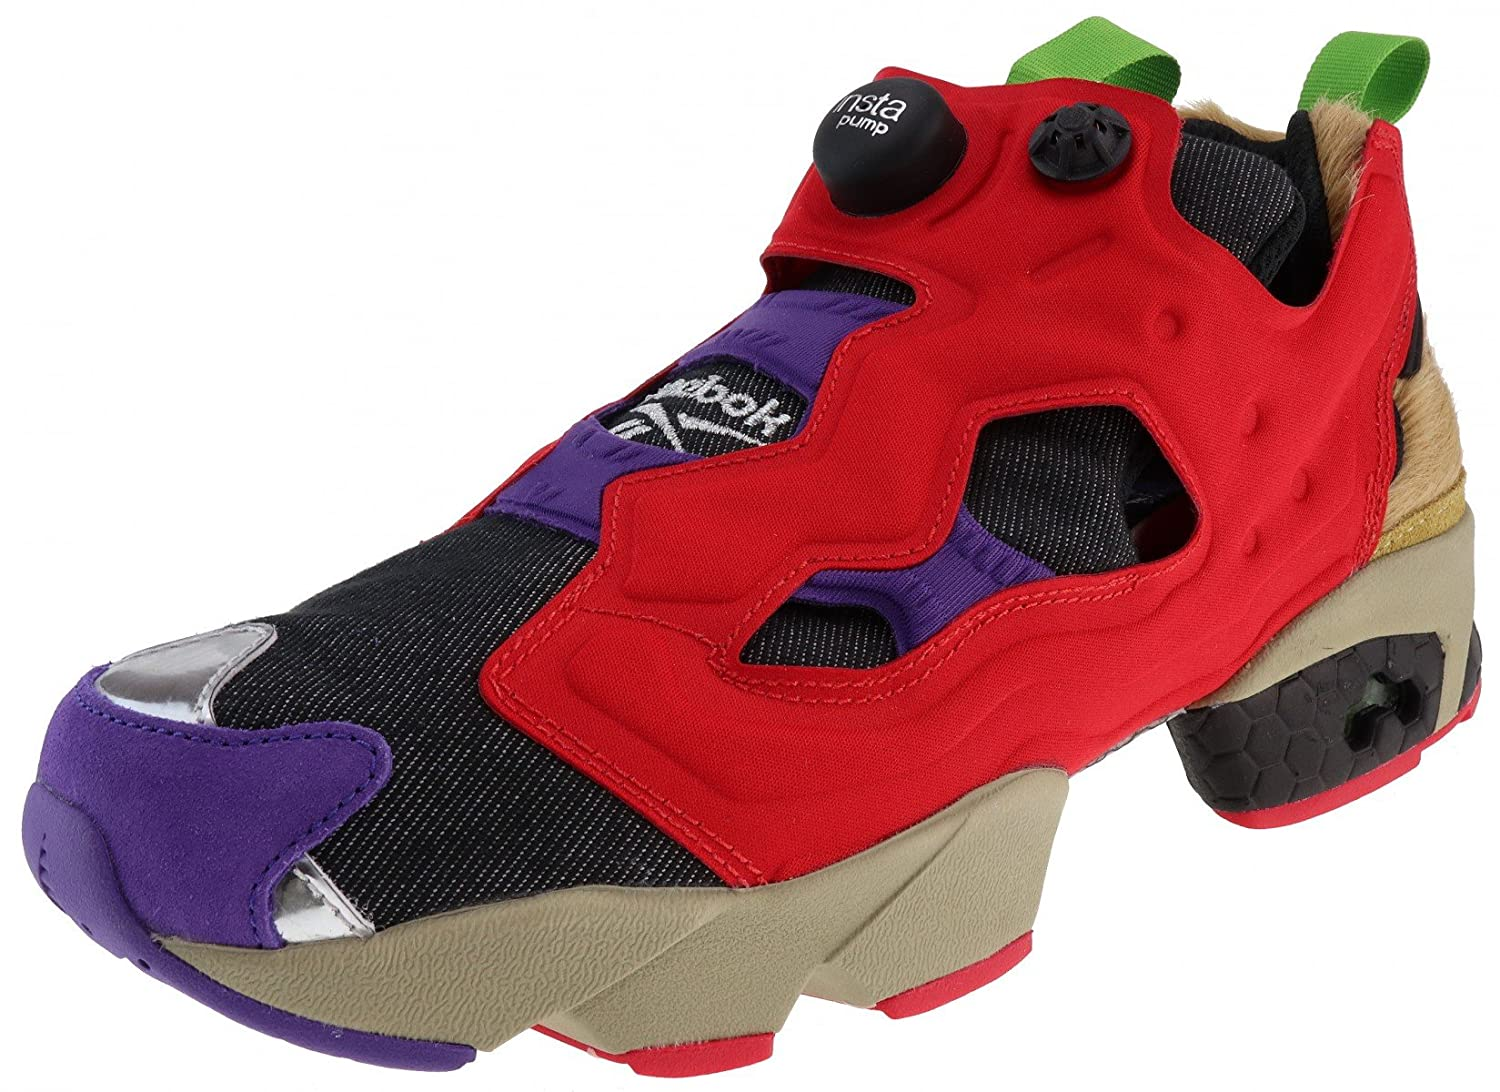 Reebok Classic Instapump OG Bebop Red Brown  440_us105_uk095_cm285m|Bebop Red Brown